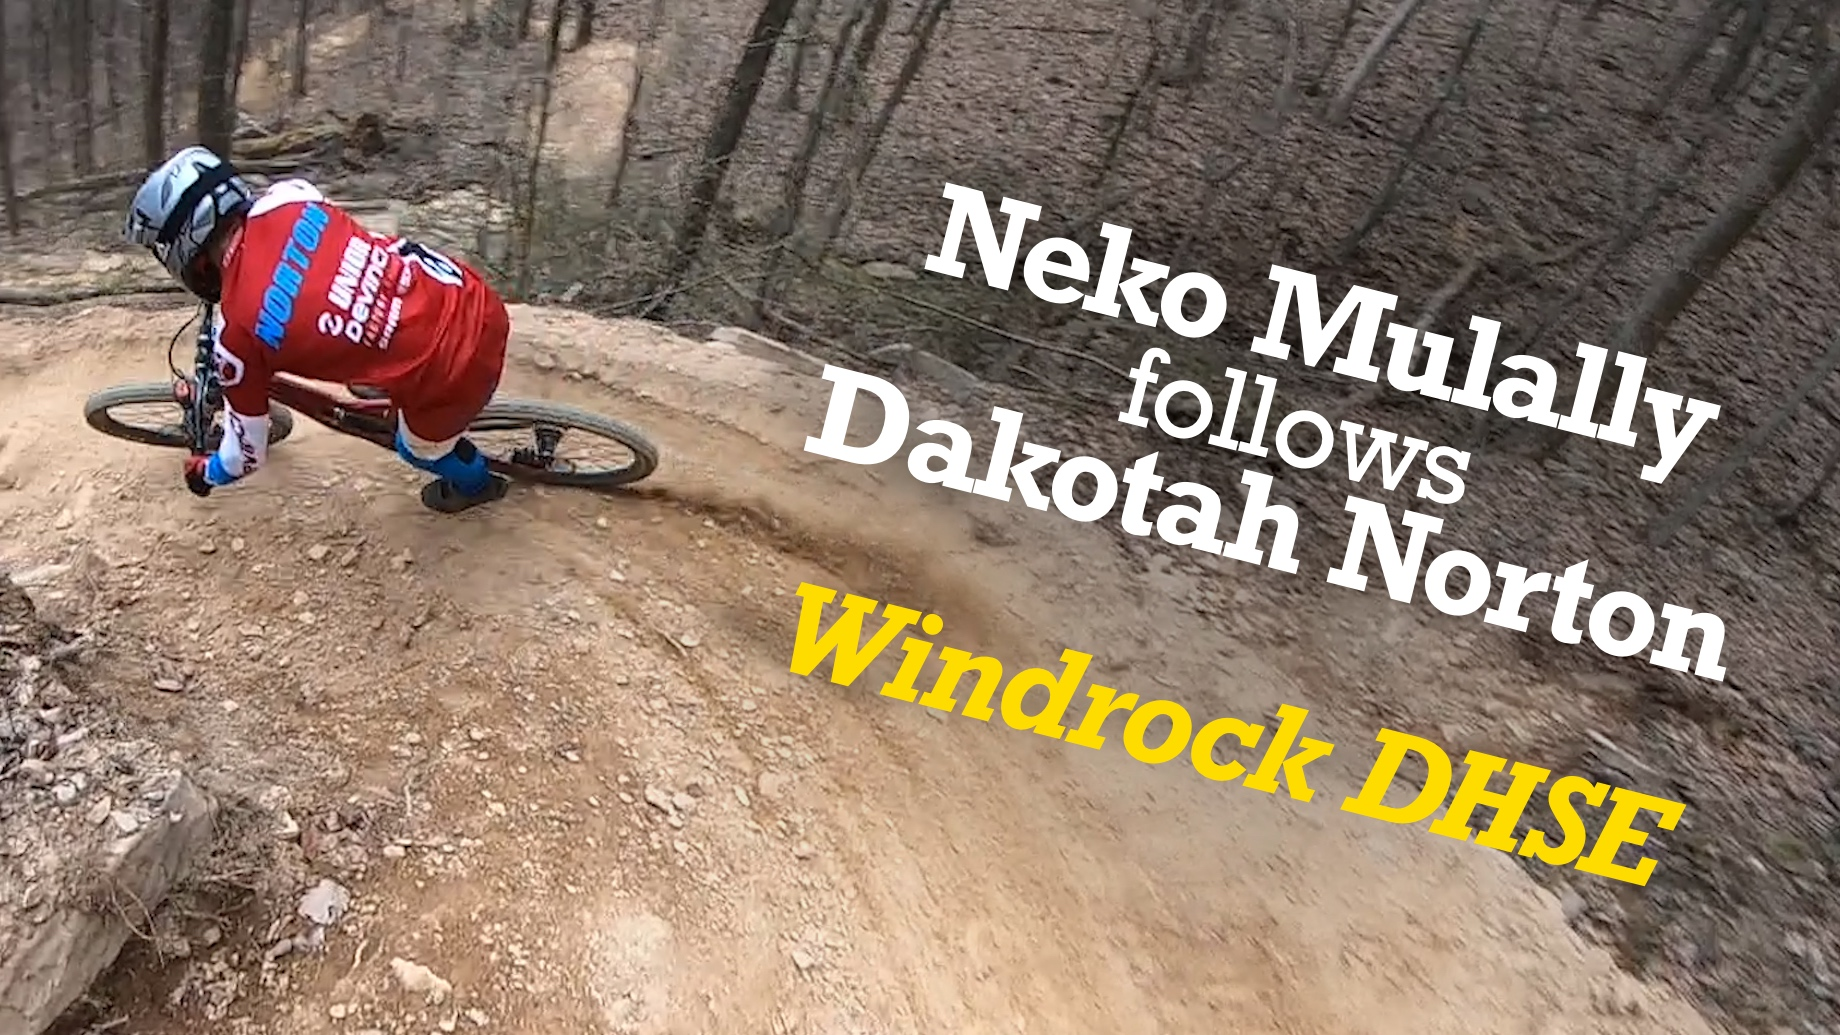 Neko Mulally Follows Dakotah Norton - Downhill Southeast at Windrock